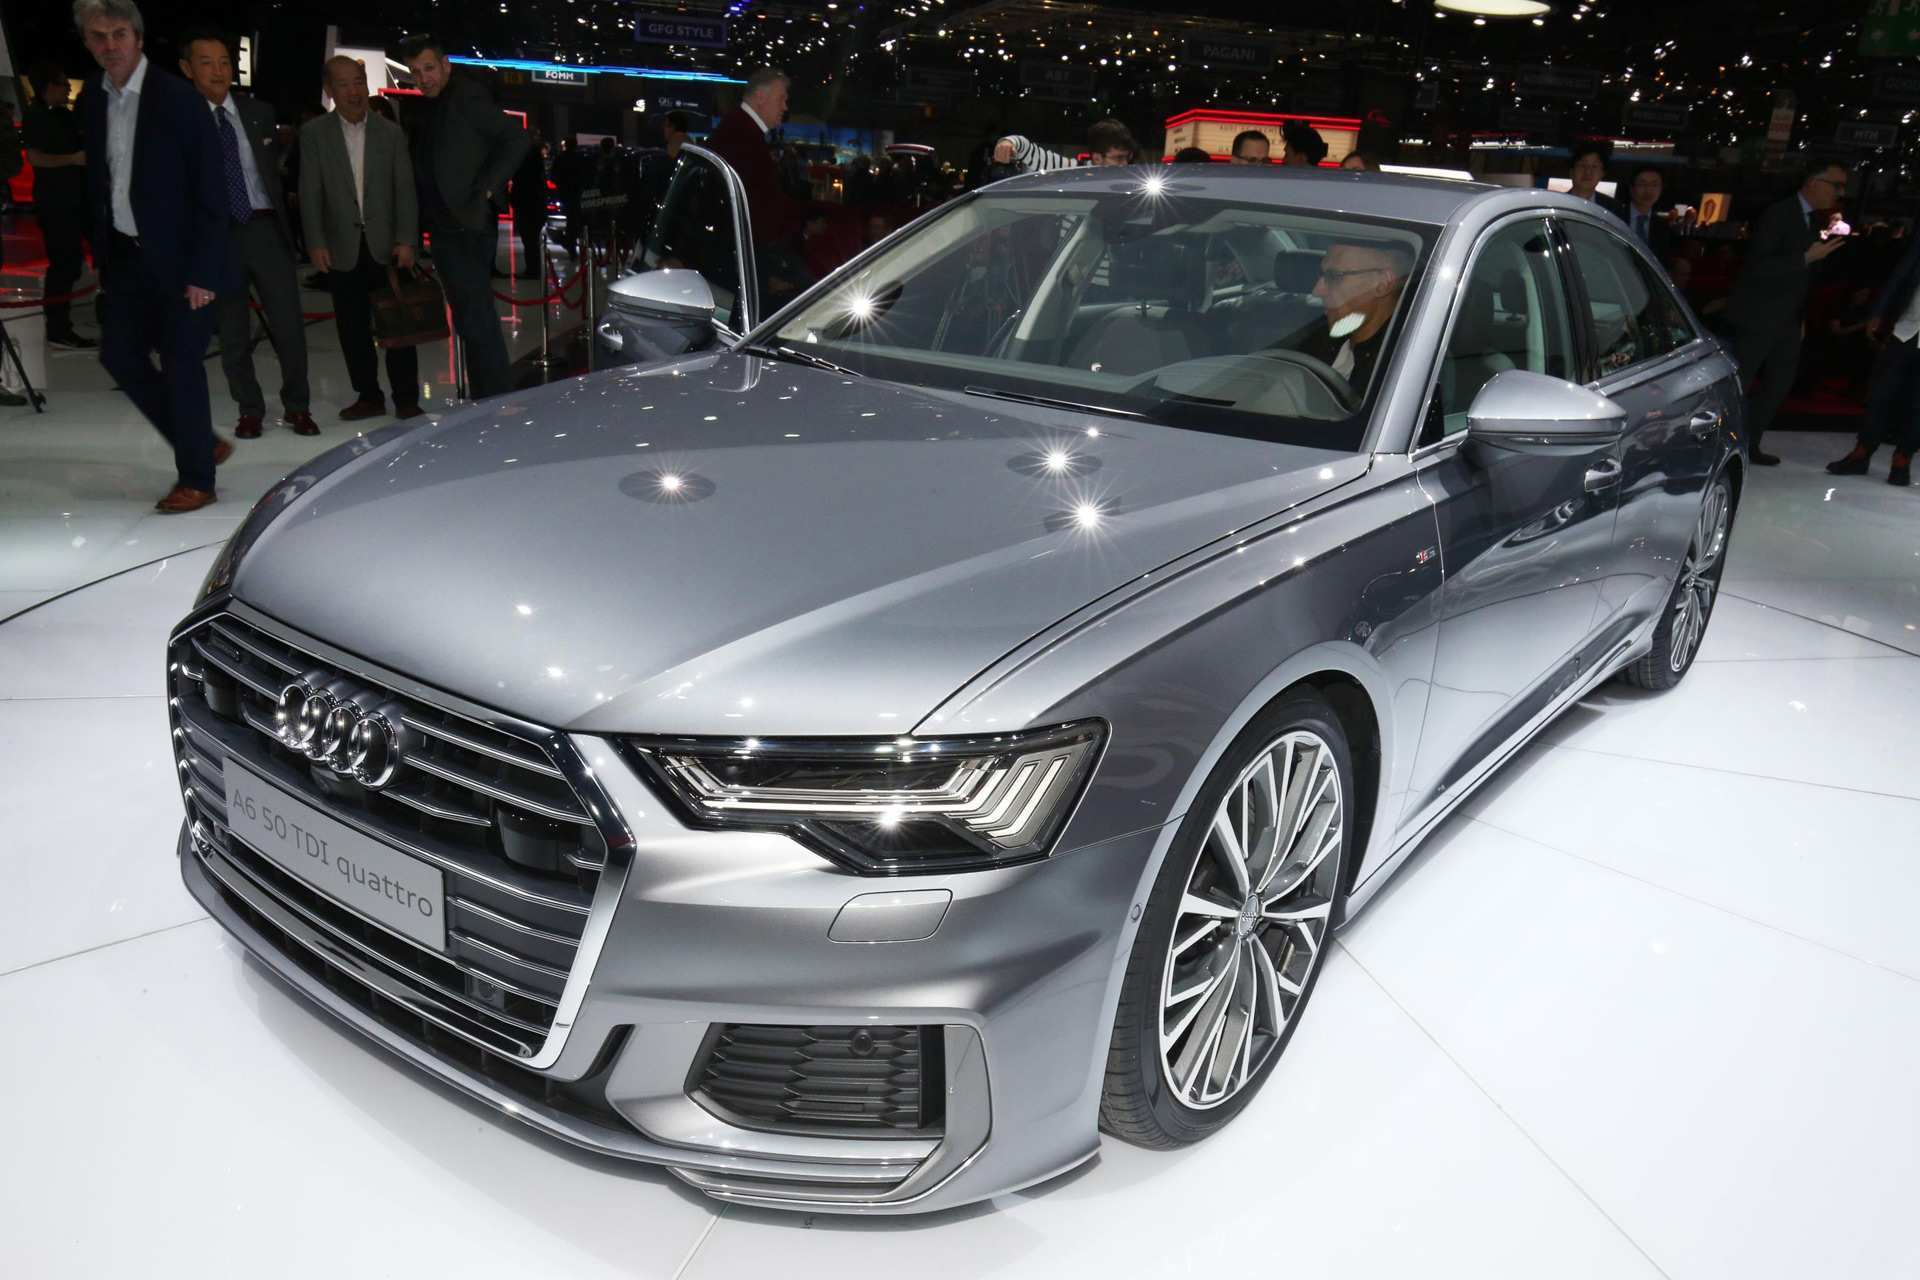 80 Best Review 2020 Audi S6 Release Date for 2020 Audi S6